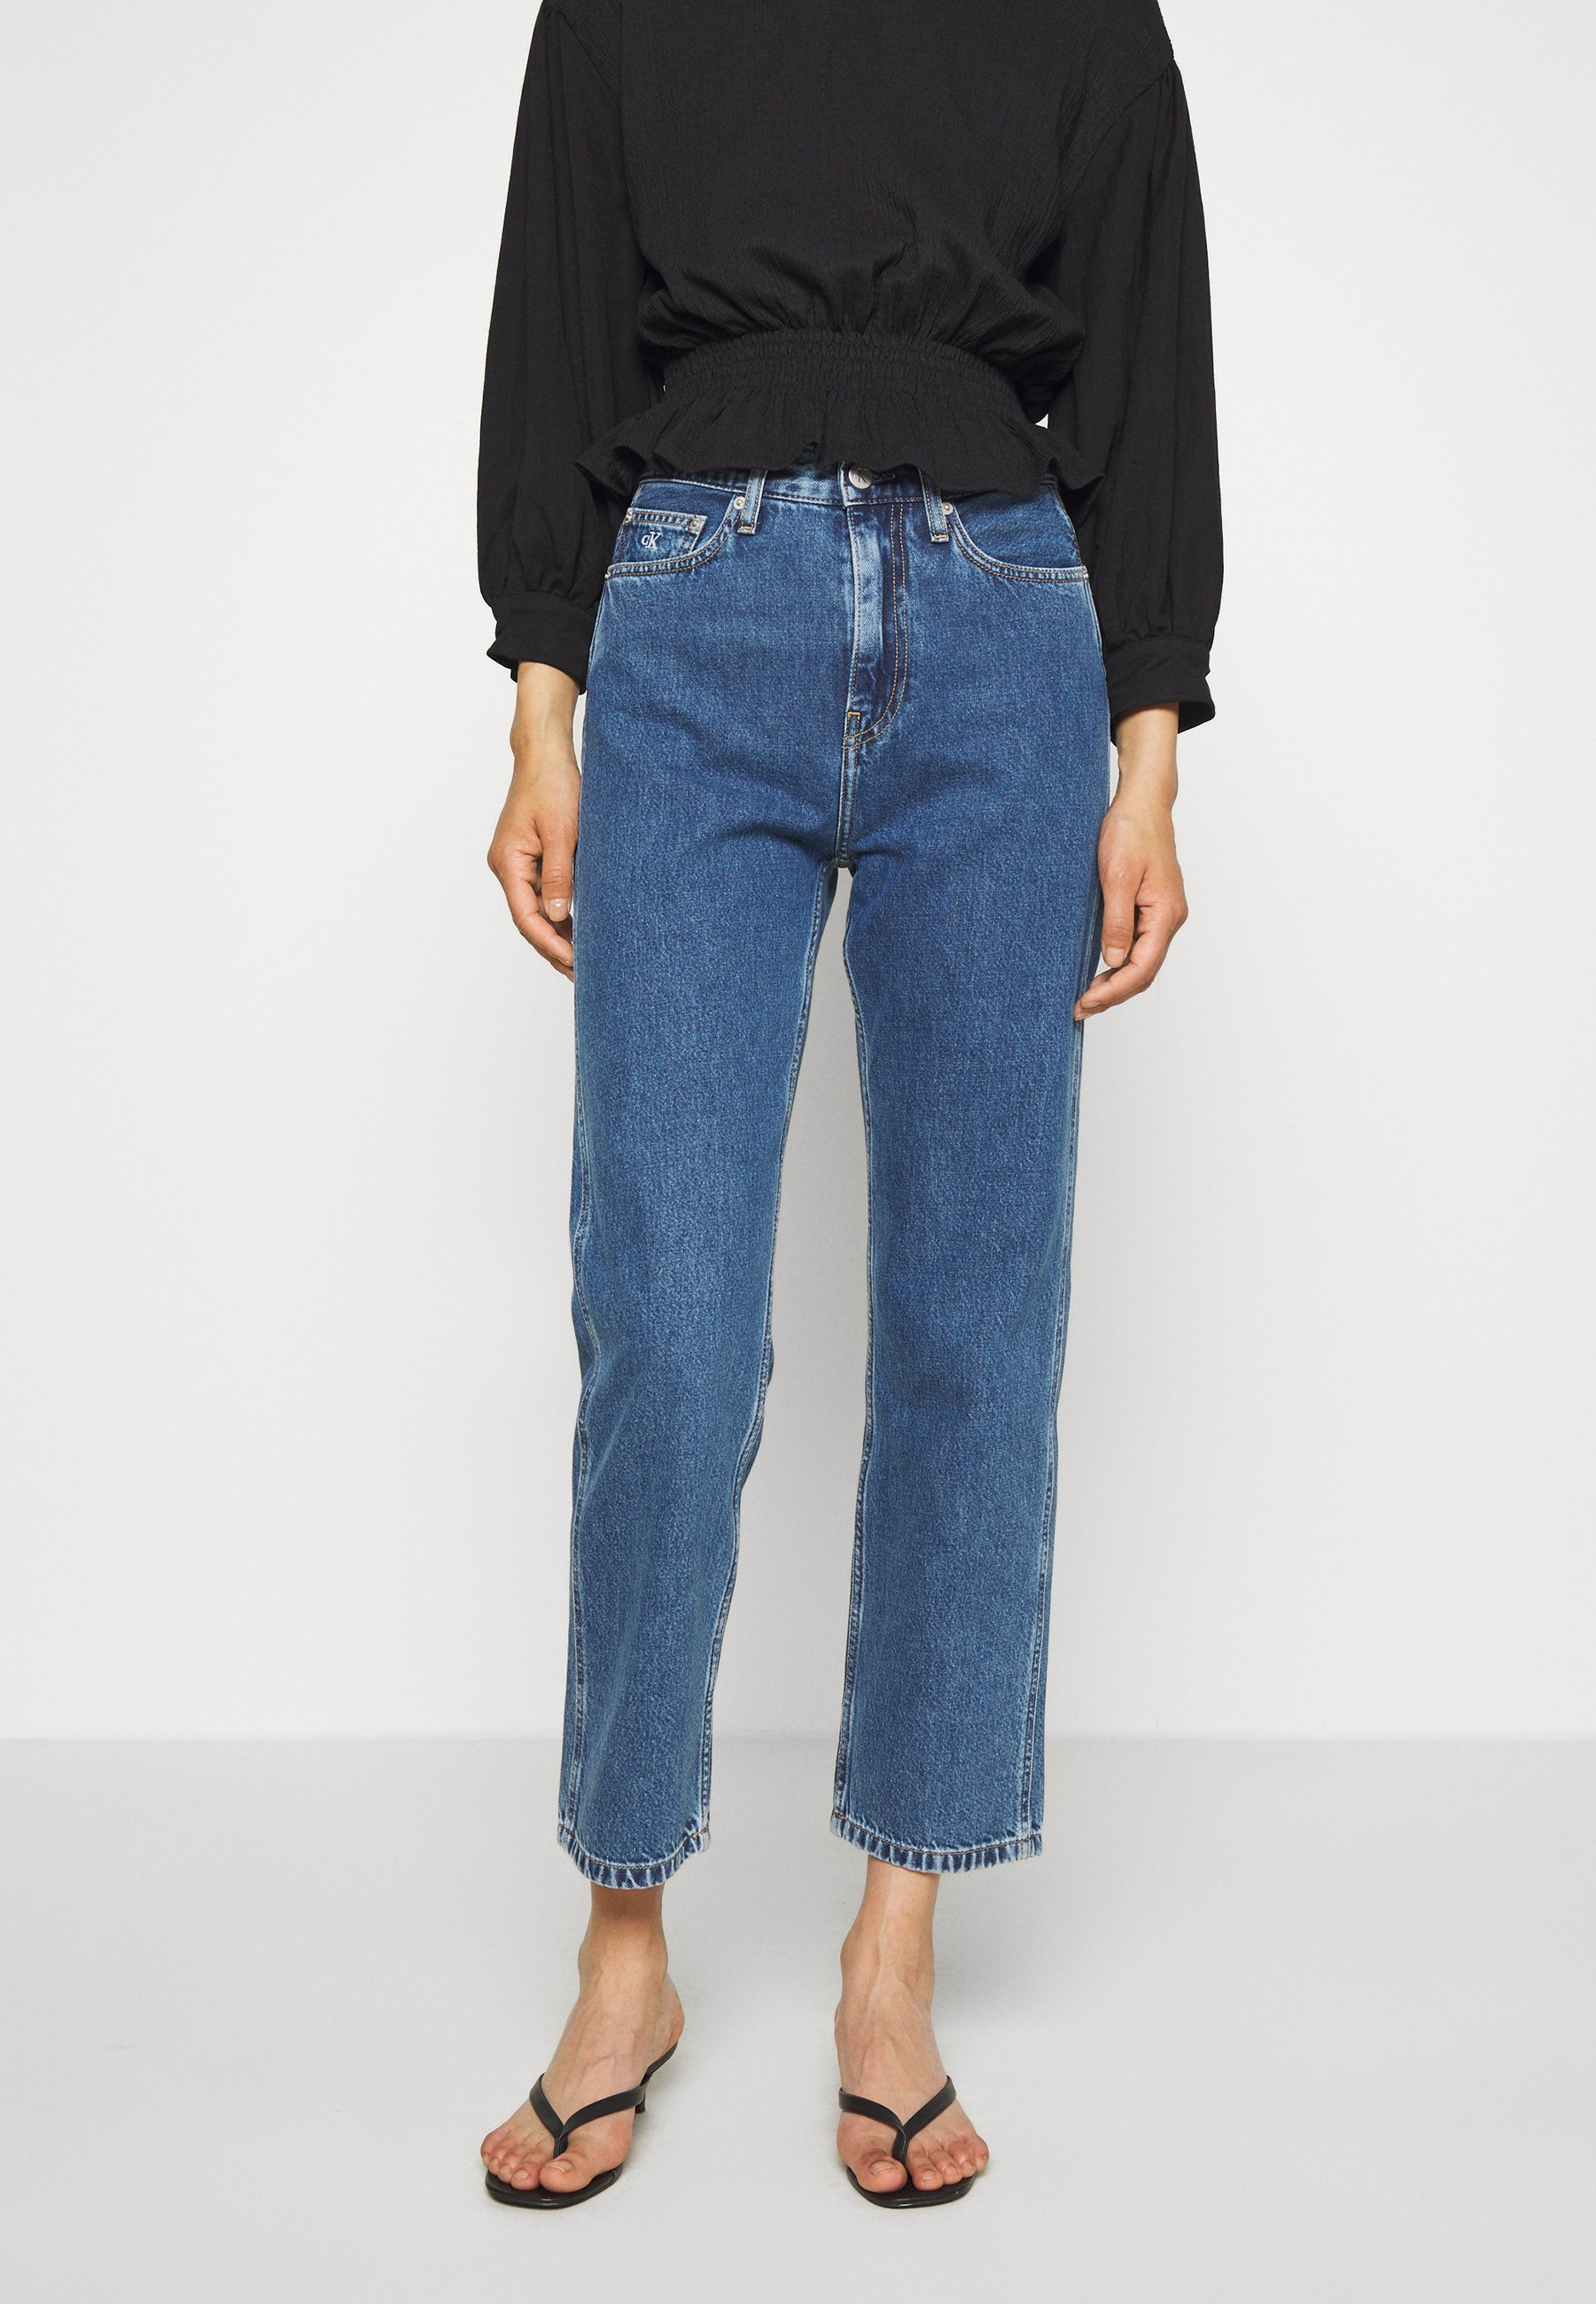 Calvin Klein Jeans HIGH RISE STRAIGHT ANKLE - Jean droit - ab076 icn light blue - Jeans Femme 4CQNy